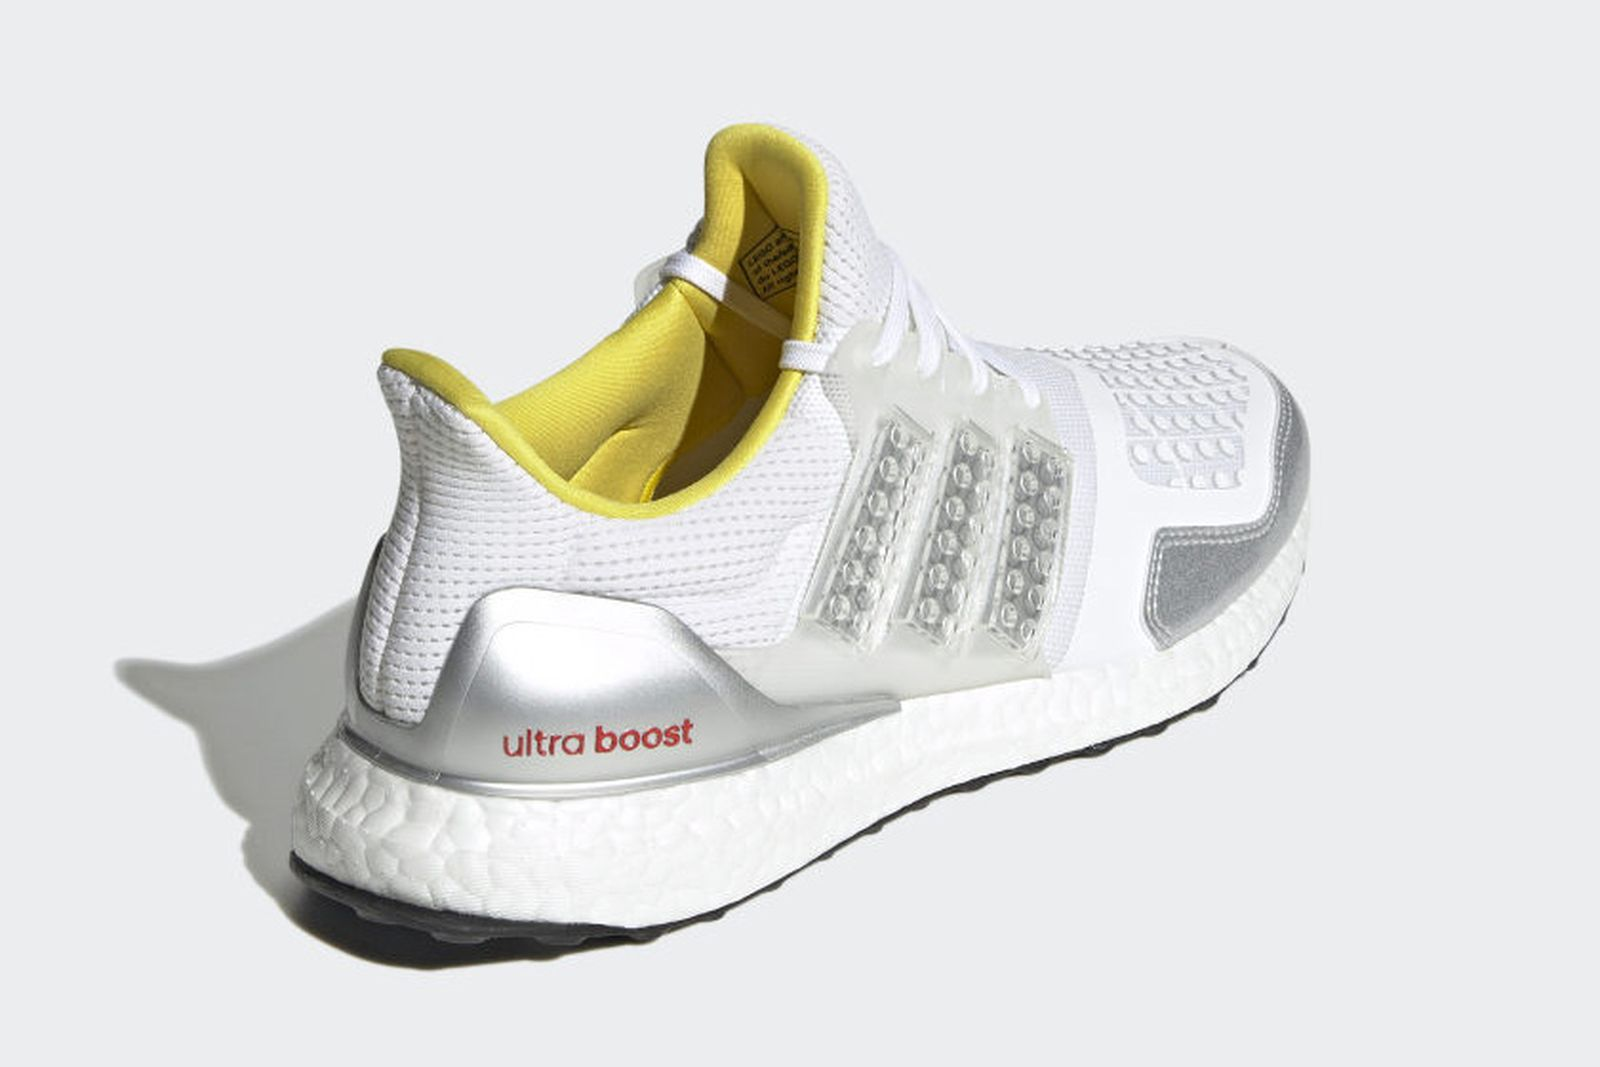 lego-adidas-ultraboost-dna-release-date-price-06